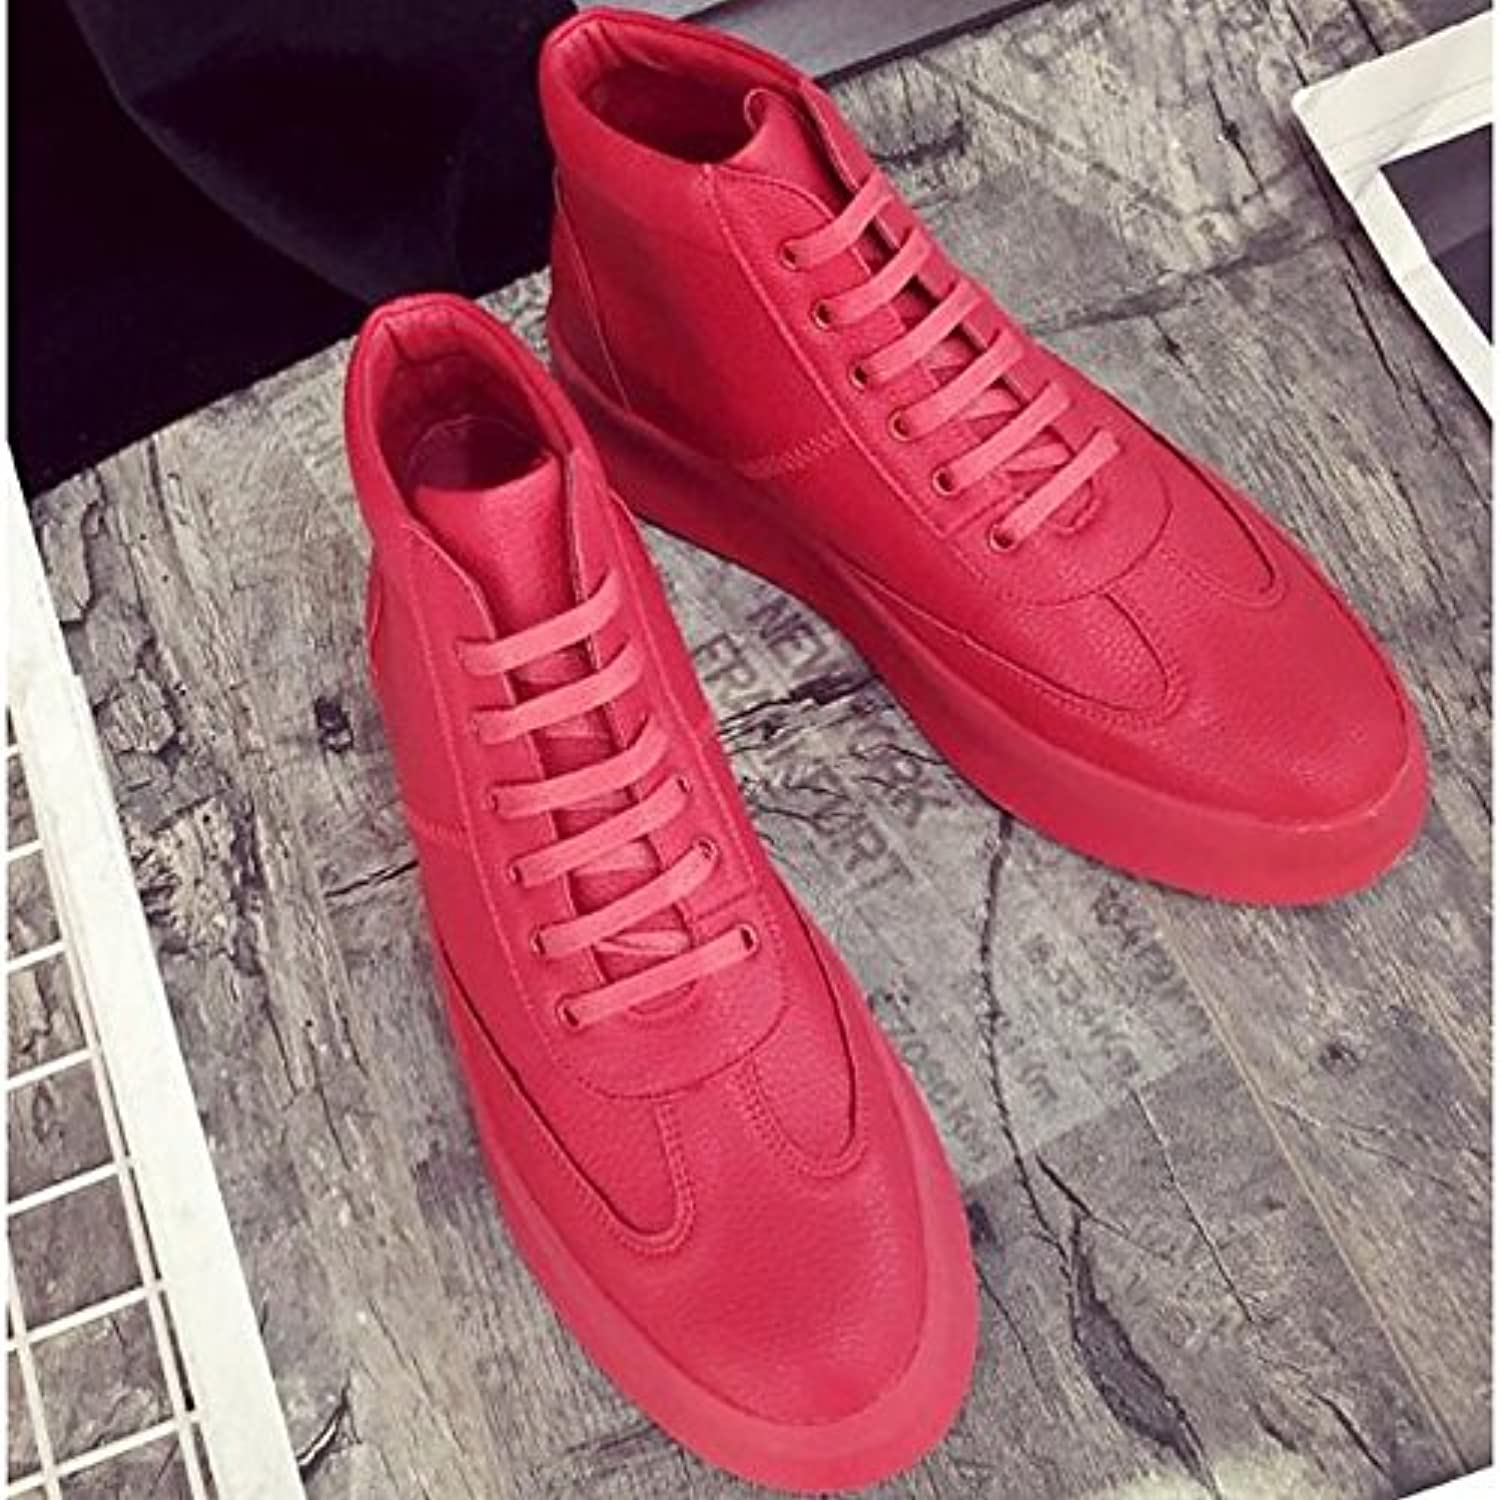 DIMAOLV Men's shoes Cowhide Spring Fall Comfort Sneakers for Casual White Black Red,Red,US5.5-6   EU37   UK4.5-5   CN37